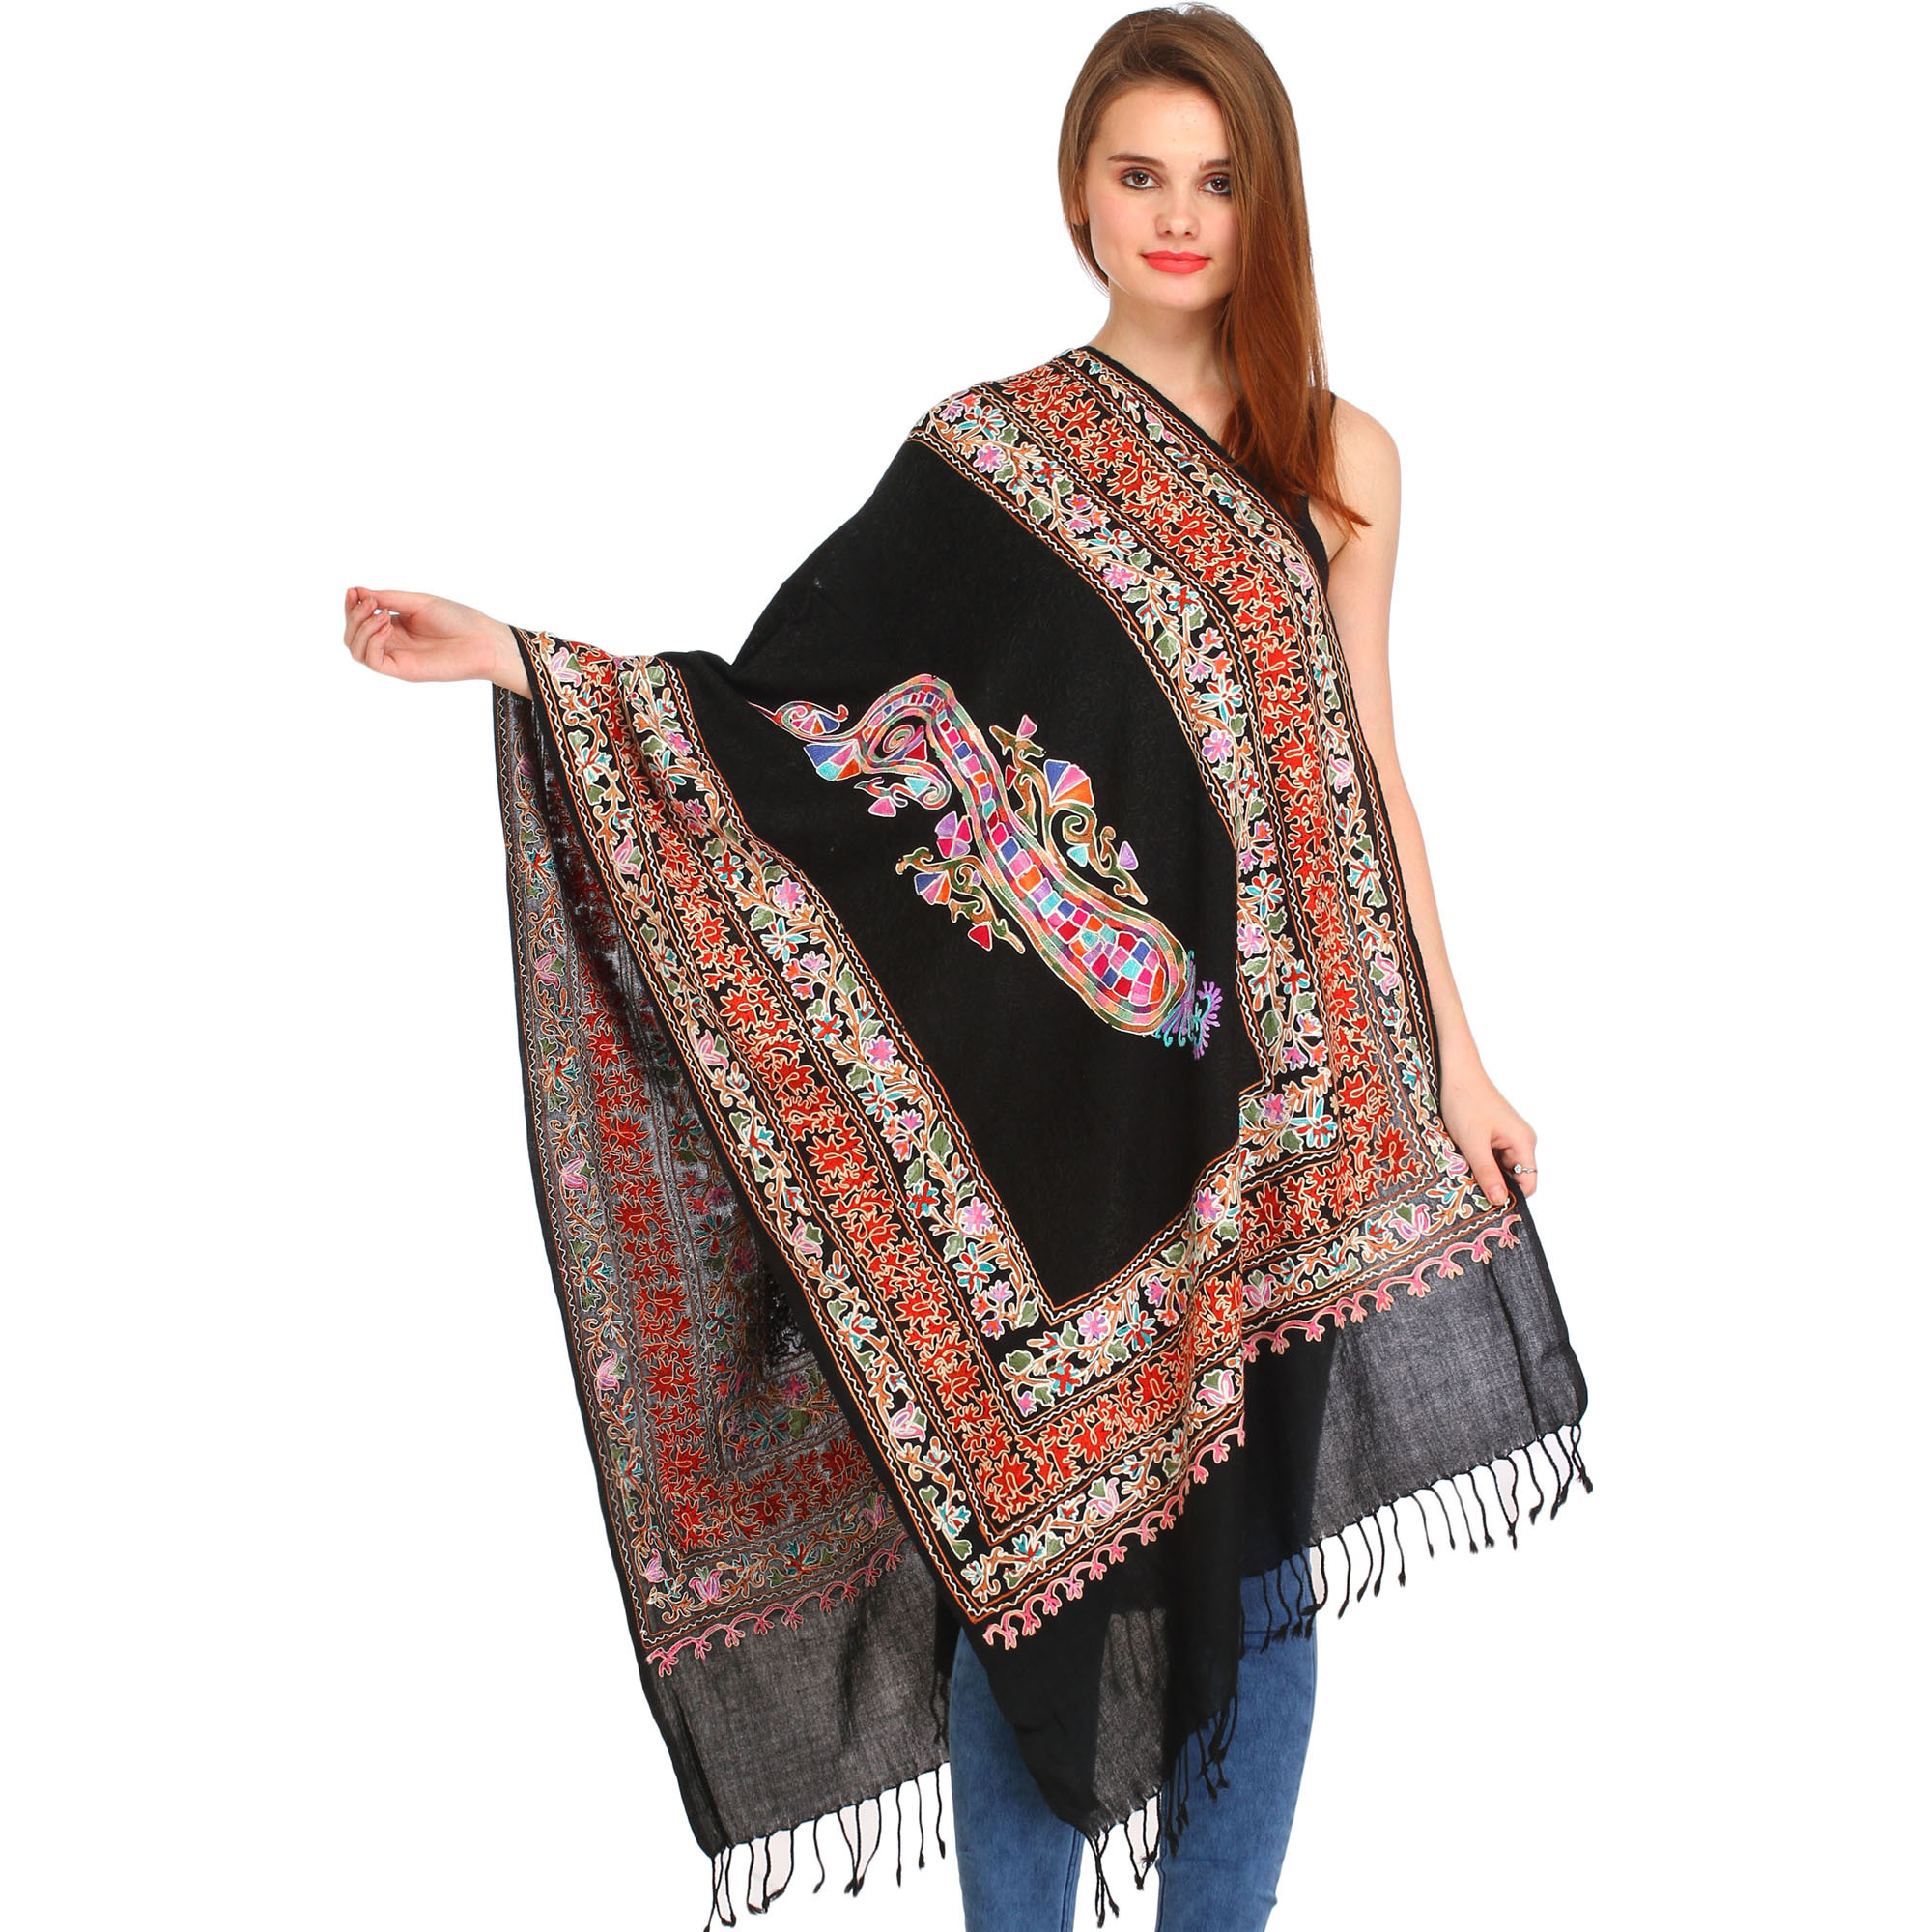 Jet-Black Kalamkari Stole from Amritsar with Ari-Embroidery and Paisley